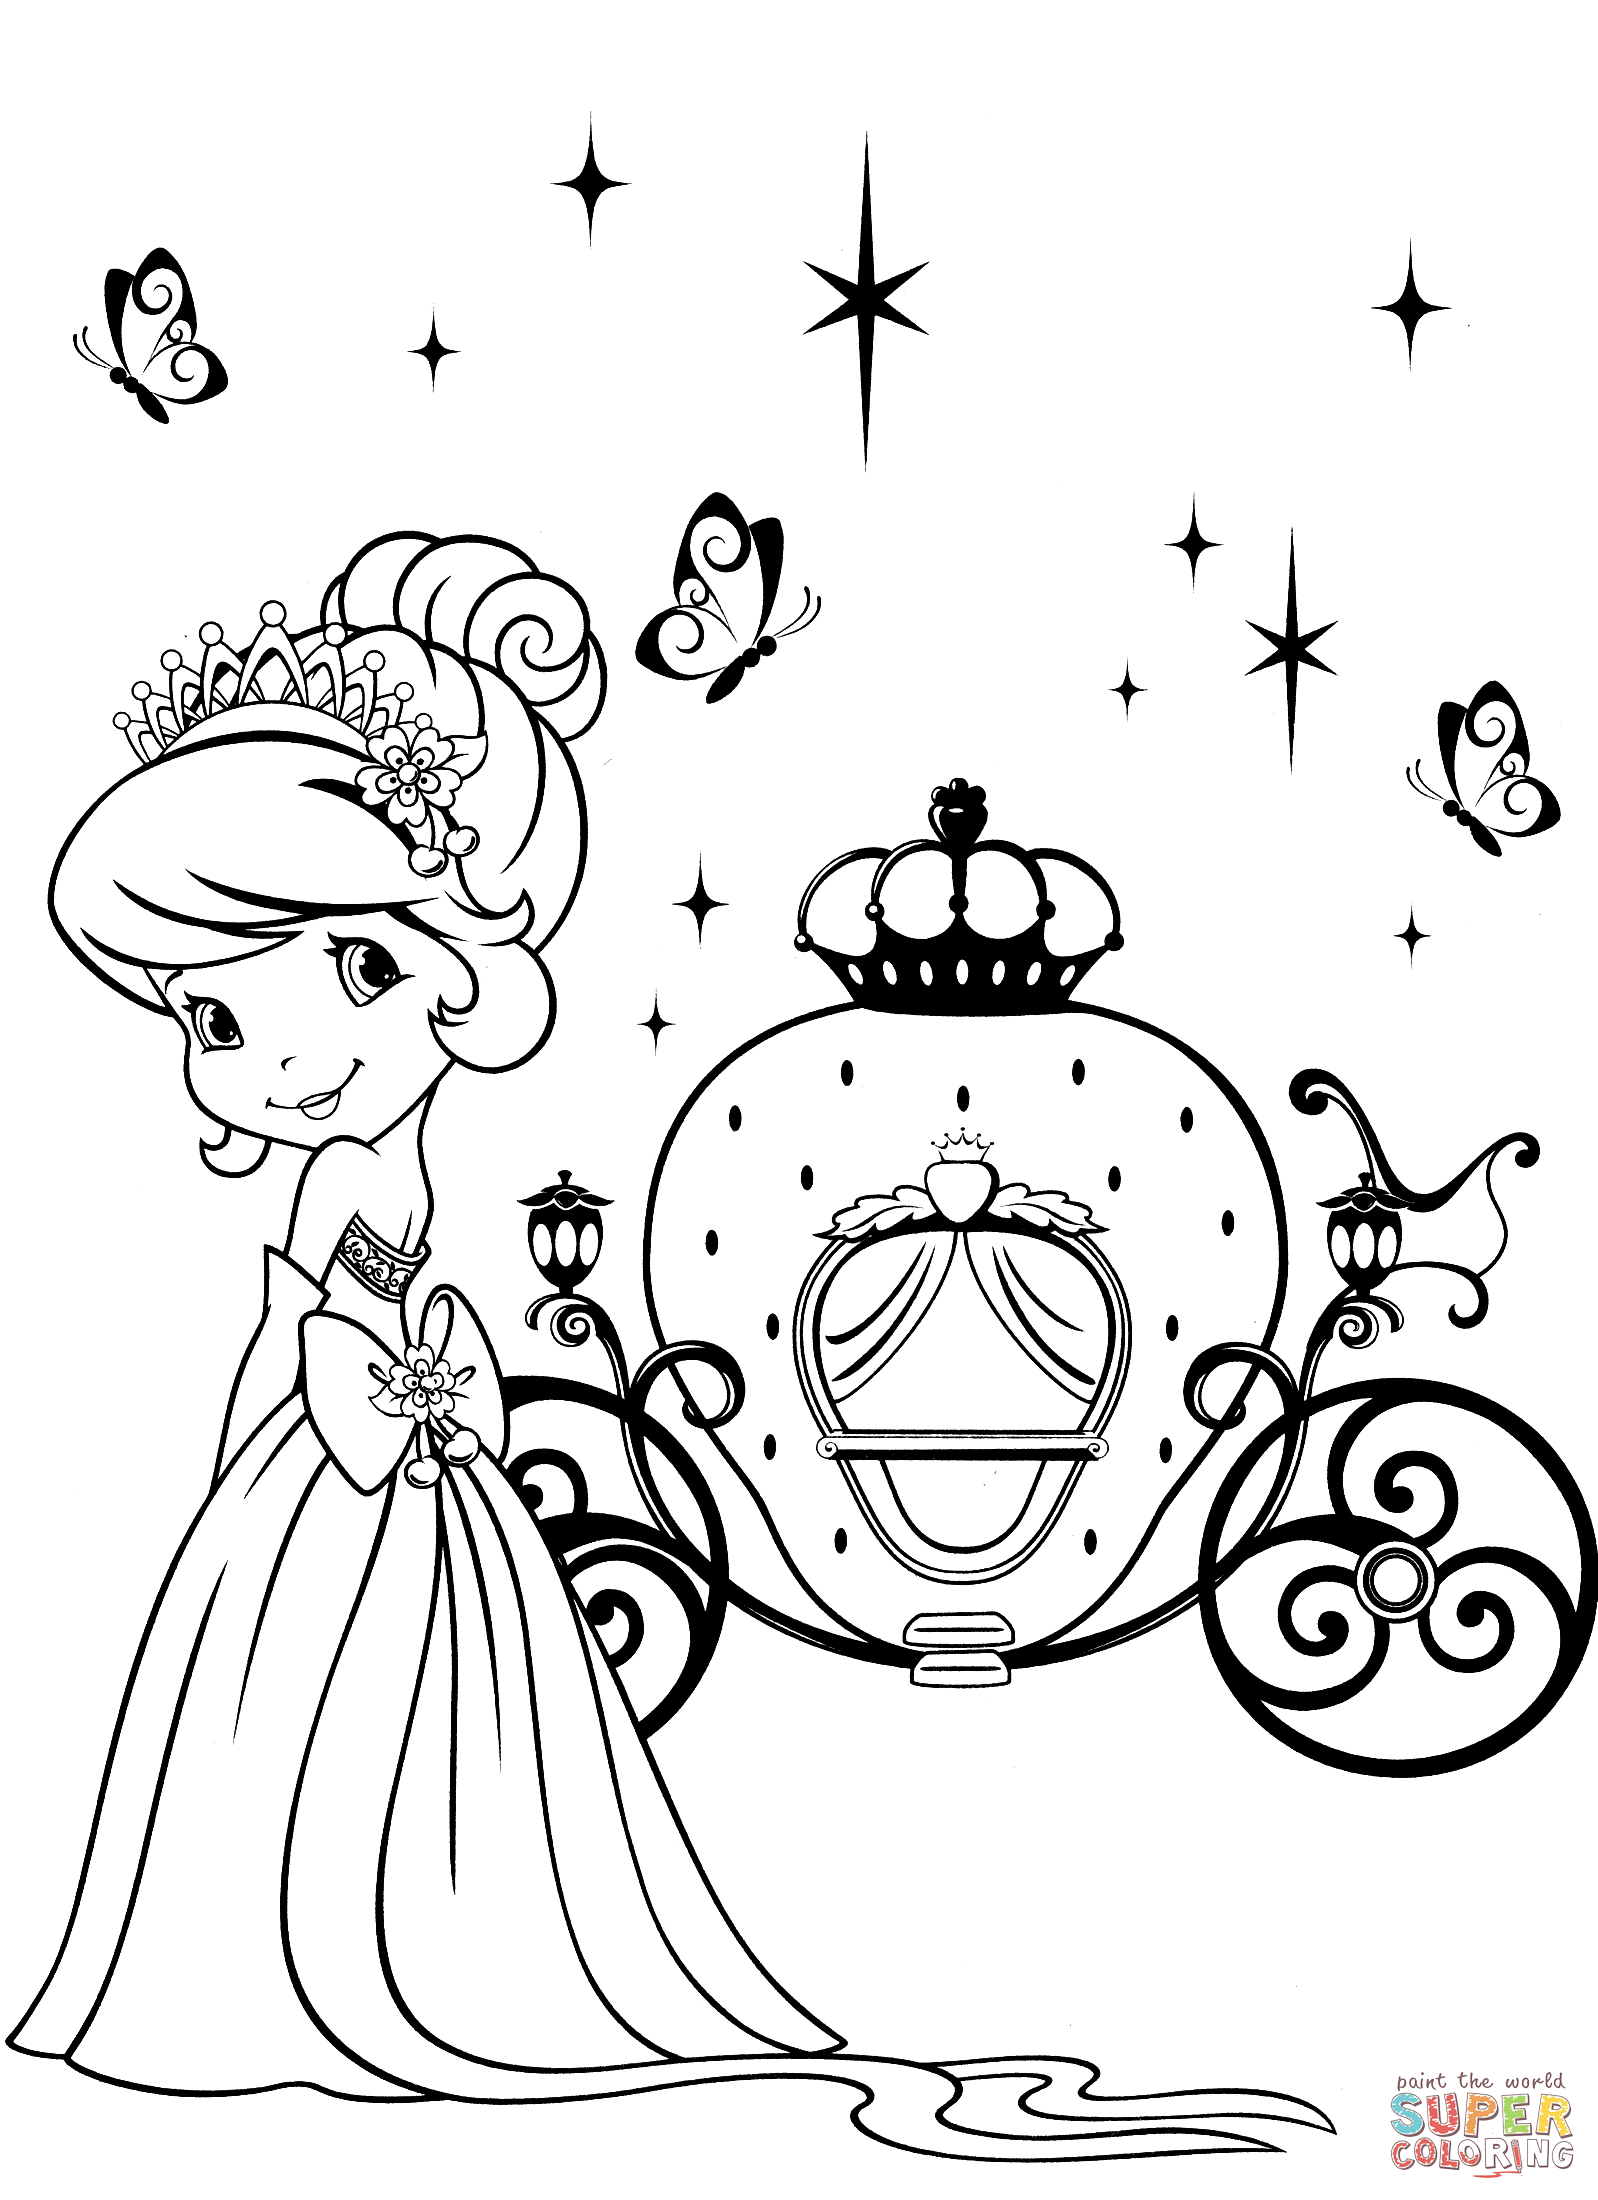 Strawberry Shortcake And Magical Carriage Coloring Page